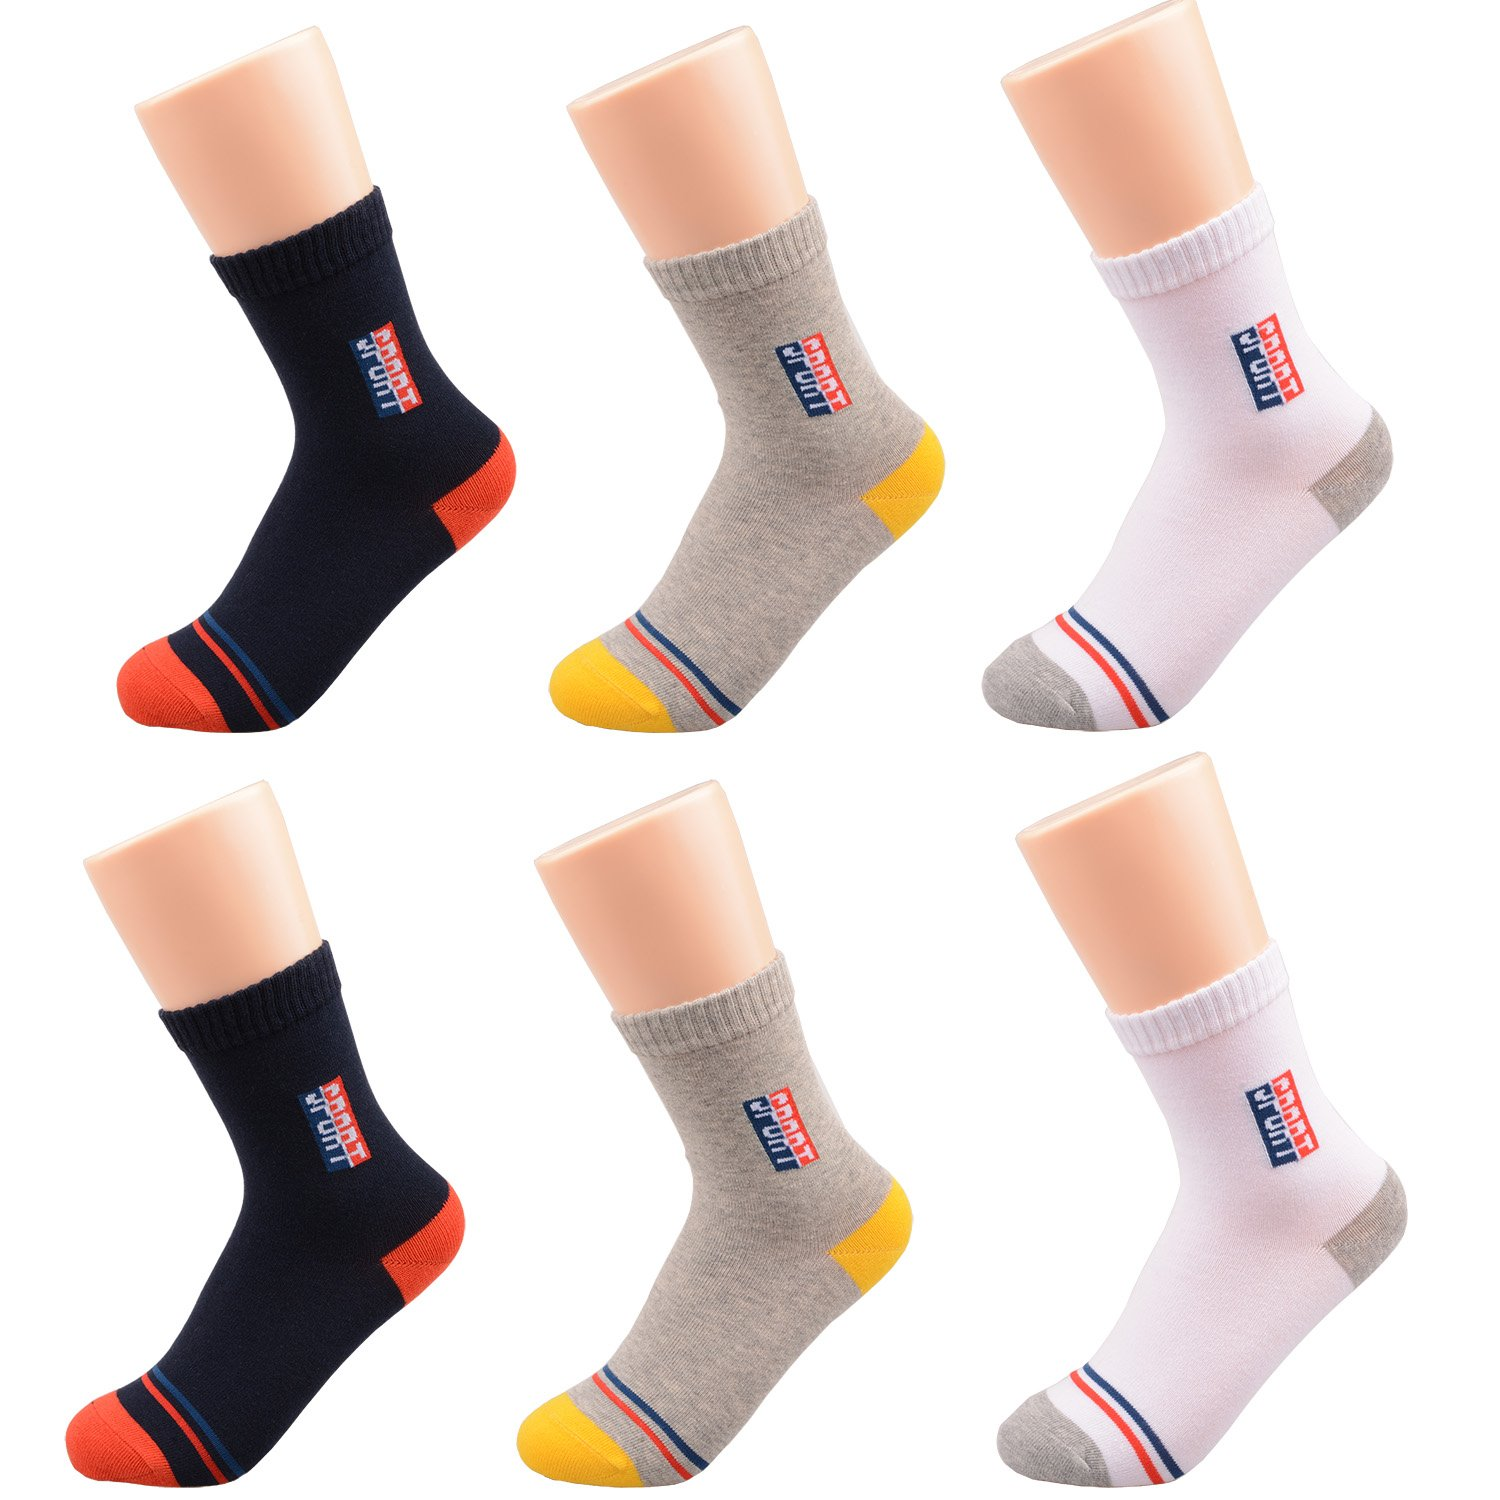 Tandi Kids Youth Boys and Girls Athletic Classics Crew Basic Socks Cotton Seamless for School Sports Running 6 or 5 Pair